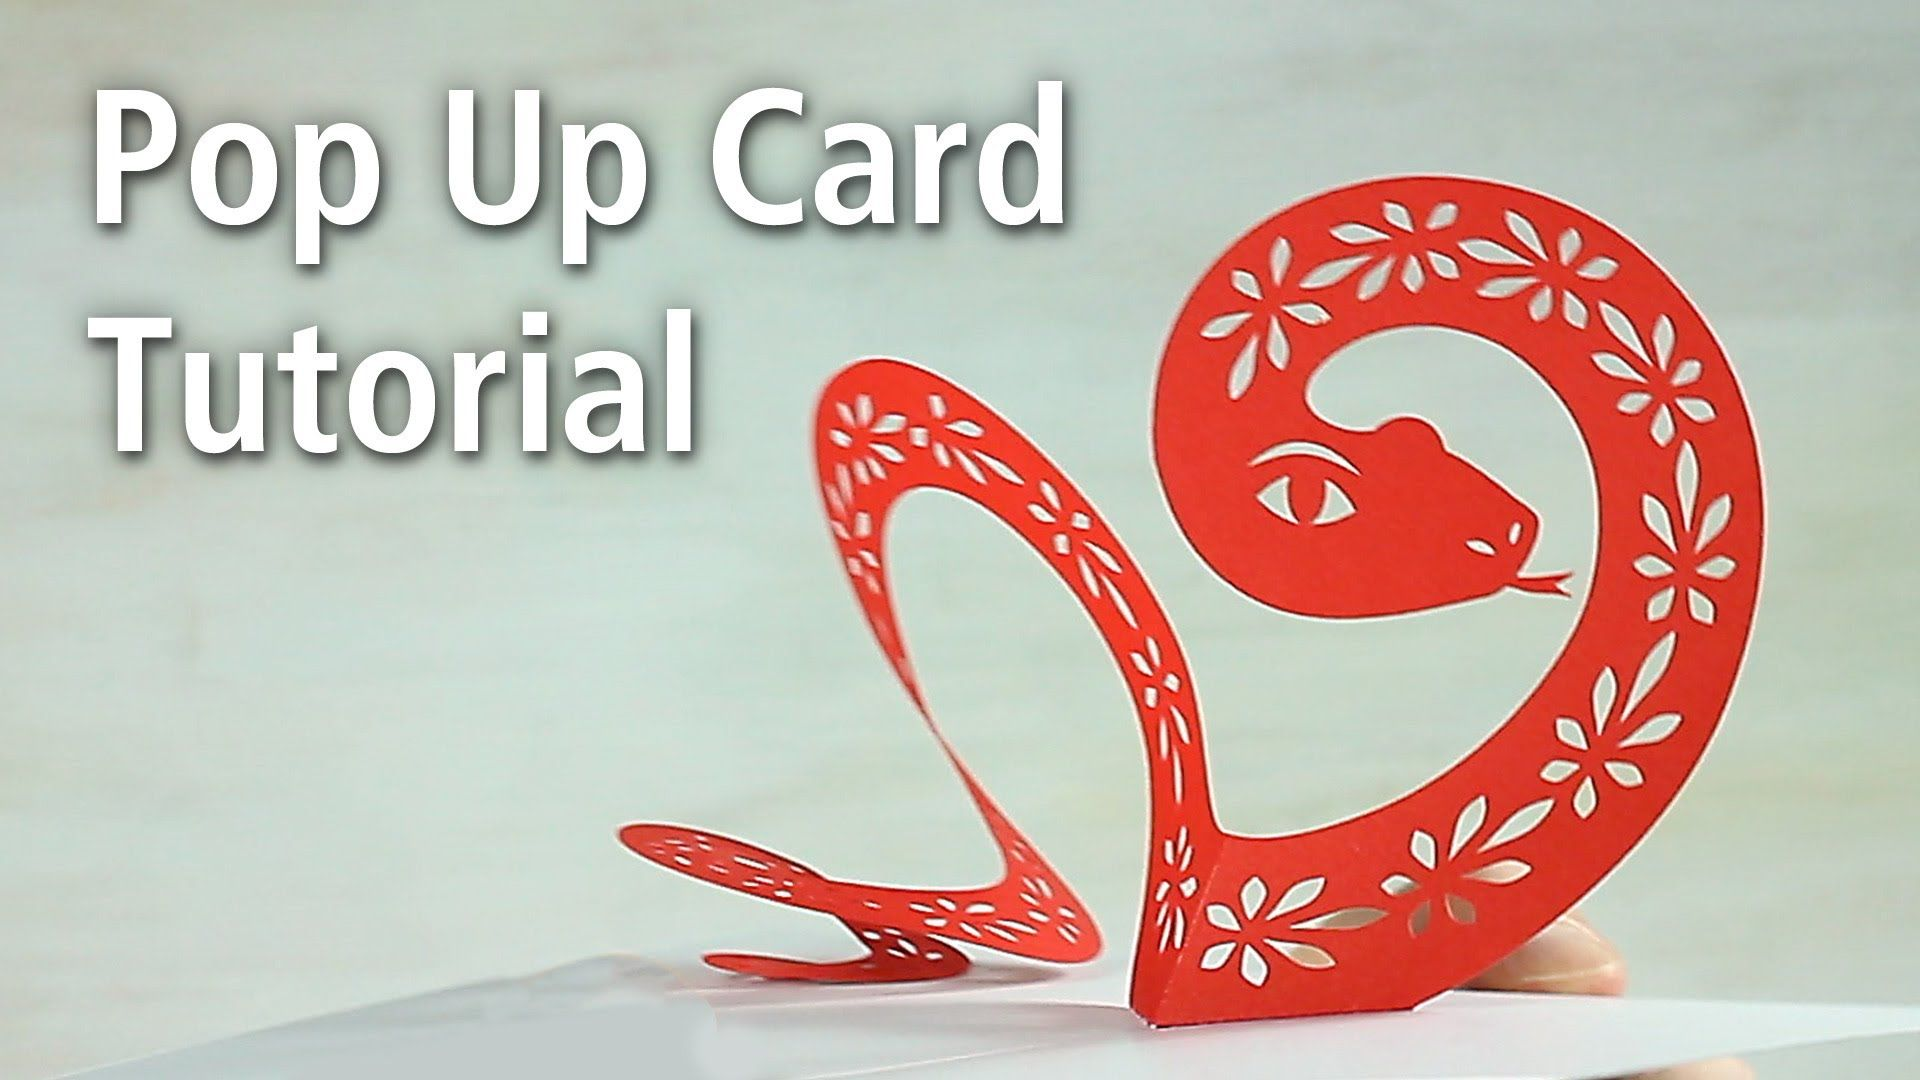 Pop Up Snake Card Tutorial And Free Download Template By Peter Dahmen Pop Up Cards Card Tutorial Card Tutorials